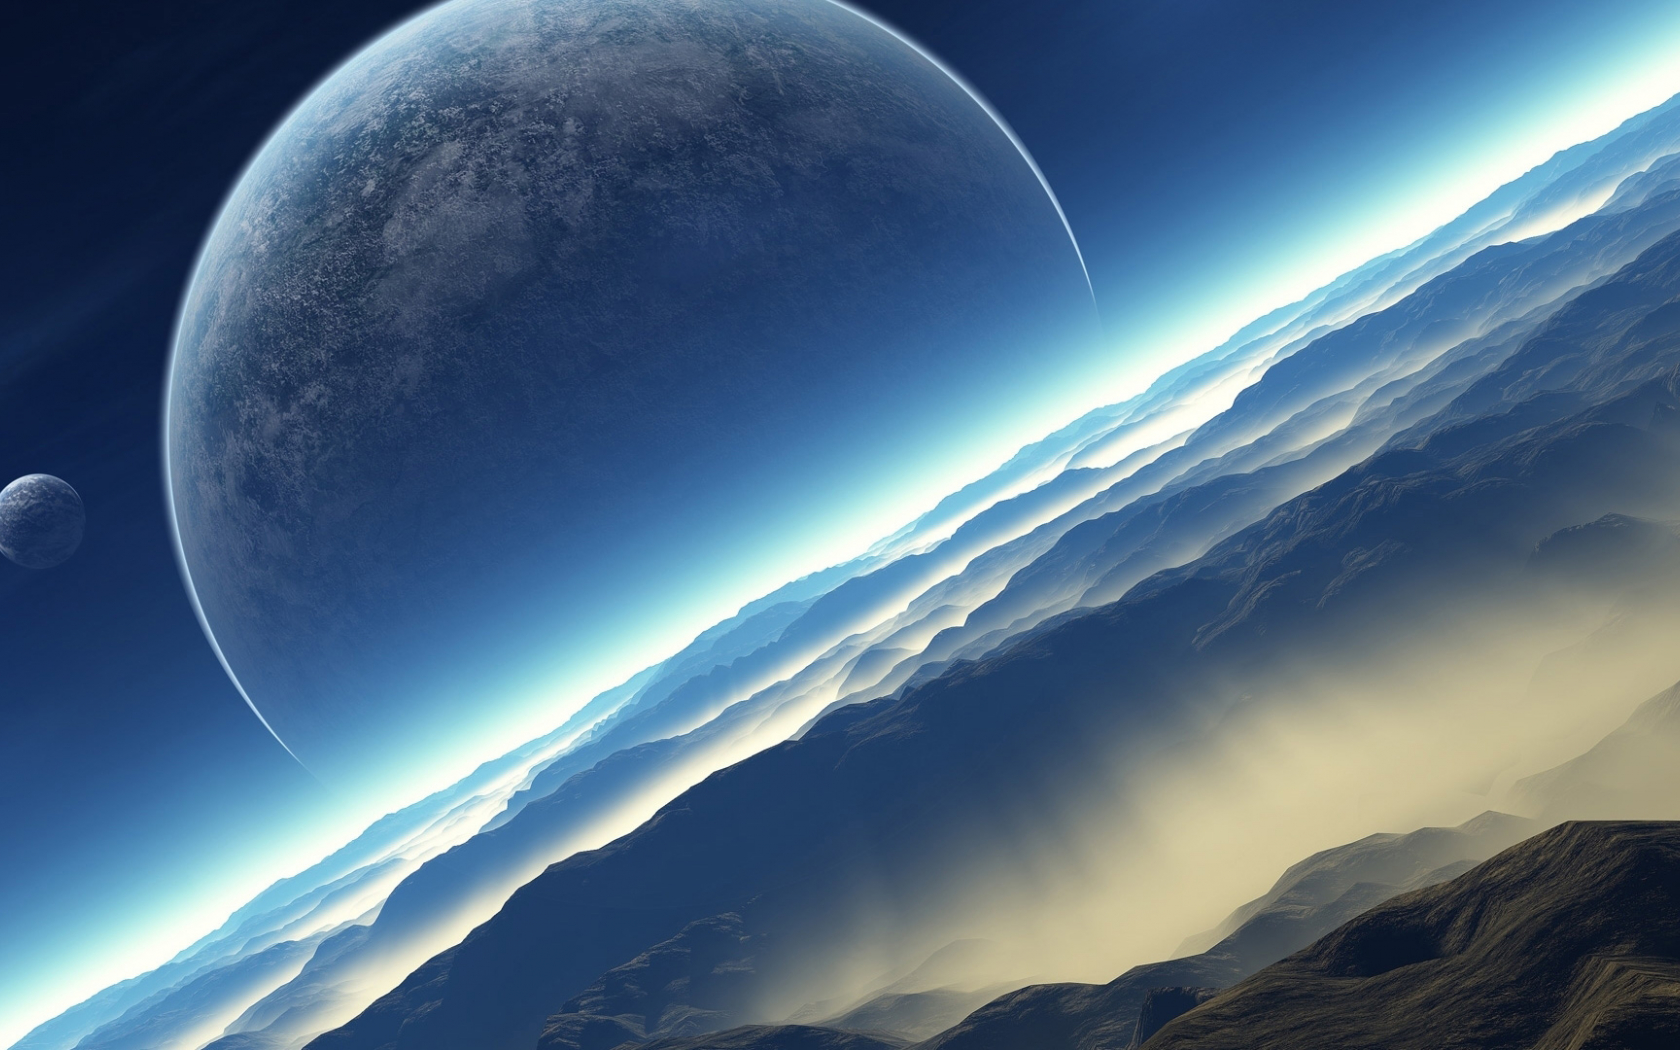 Free Download Space Full Hd Wallpapers Download 1080p Desktop Backgrounds 1920x1080 For Your Desktop Mobile Tablet Explore 47 High Def Space Wallpaper Hubble Images Wallpaper Outer Space Wallpaper Best